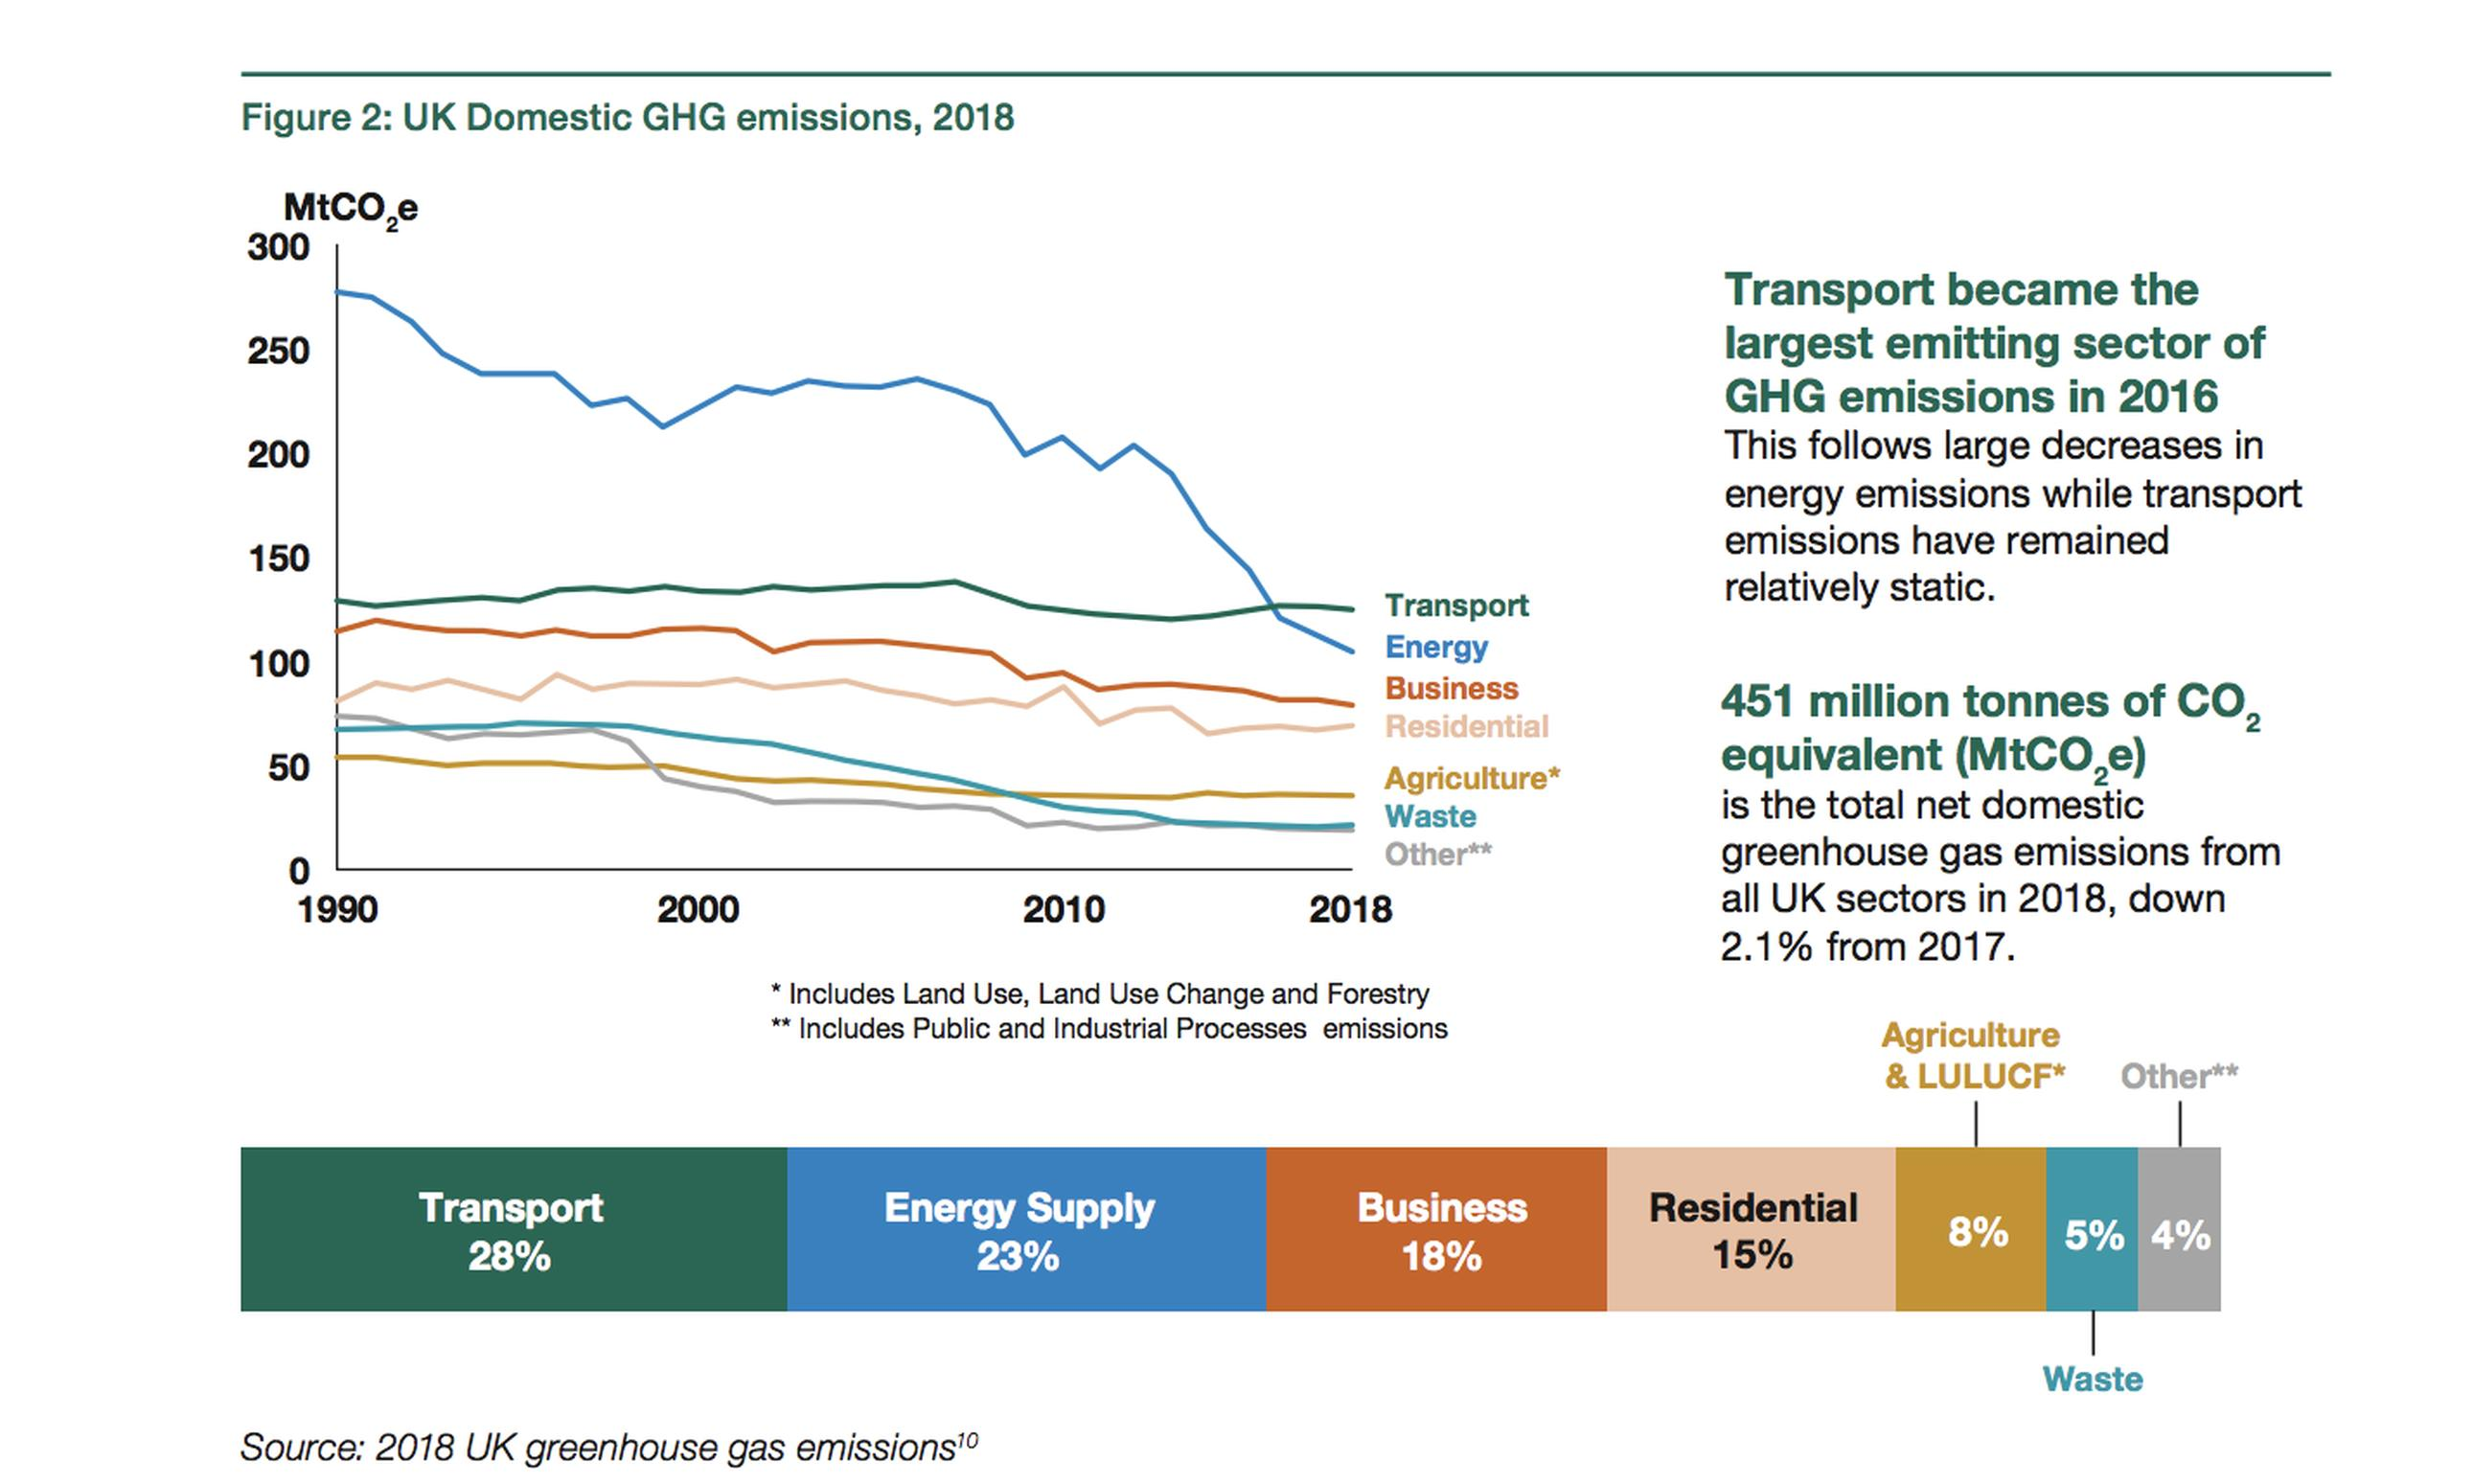 What would happen if government policy regarding carbon emissions changes, as in the recent DfT Decarbonising Transport plan